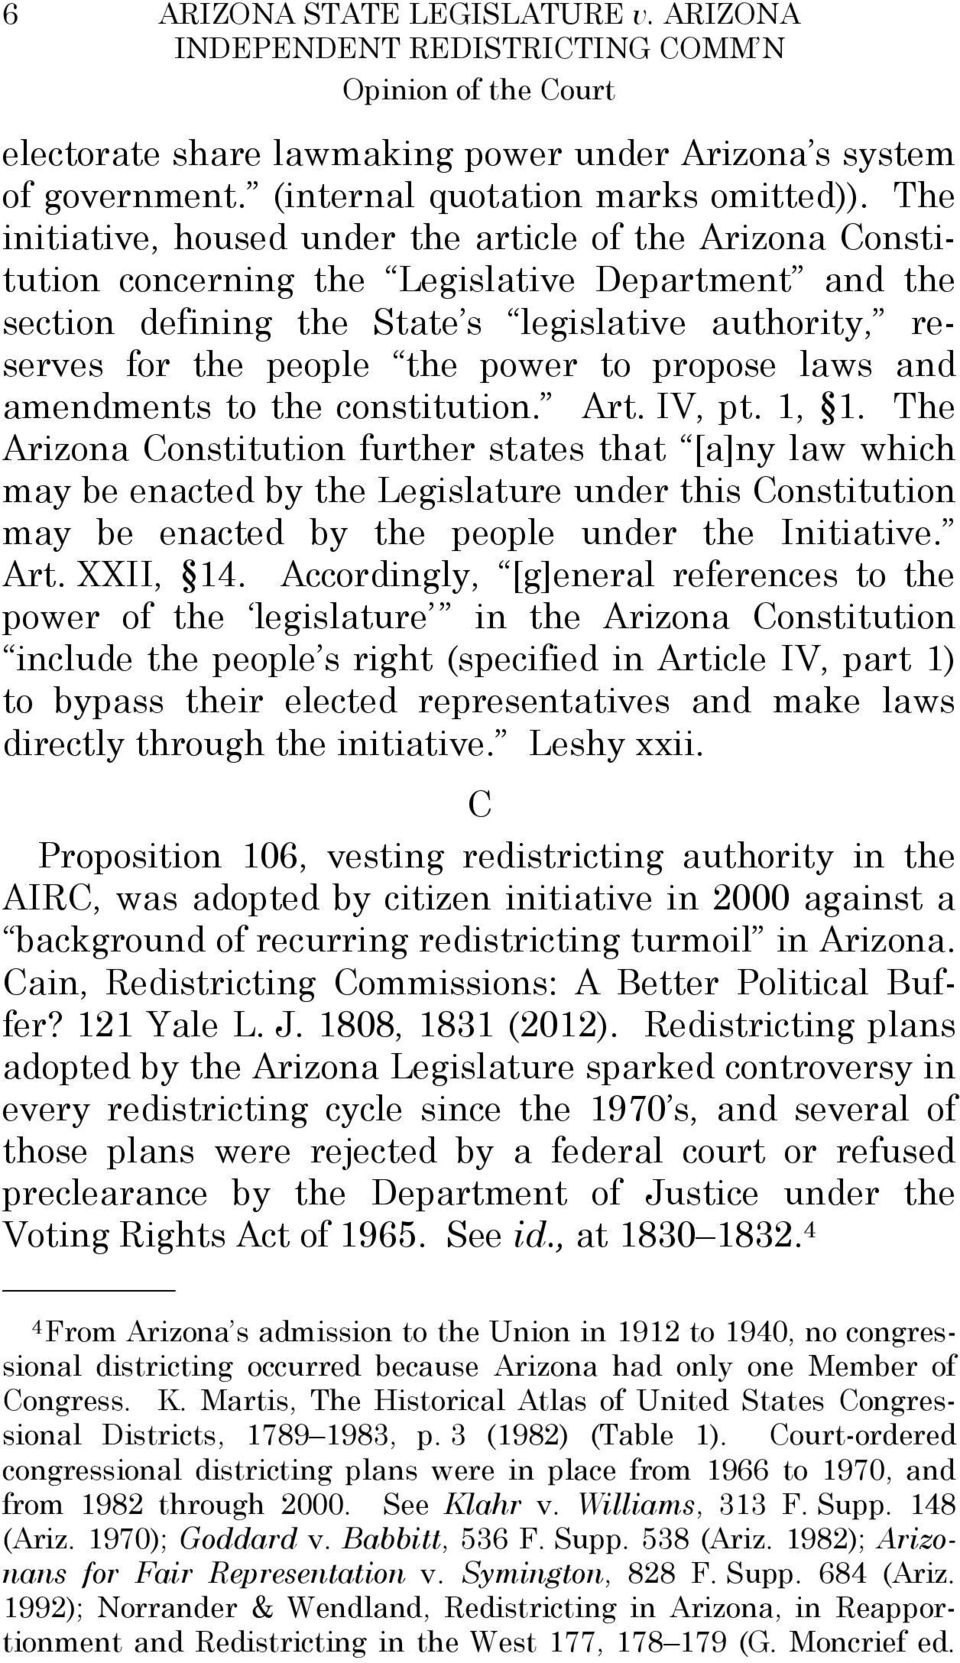 power to propose laws and amendments to the constitution. Art. IV, pt. 1, 1.